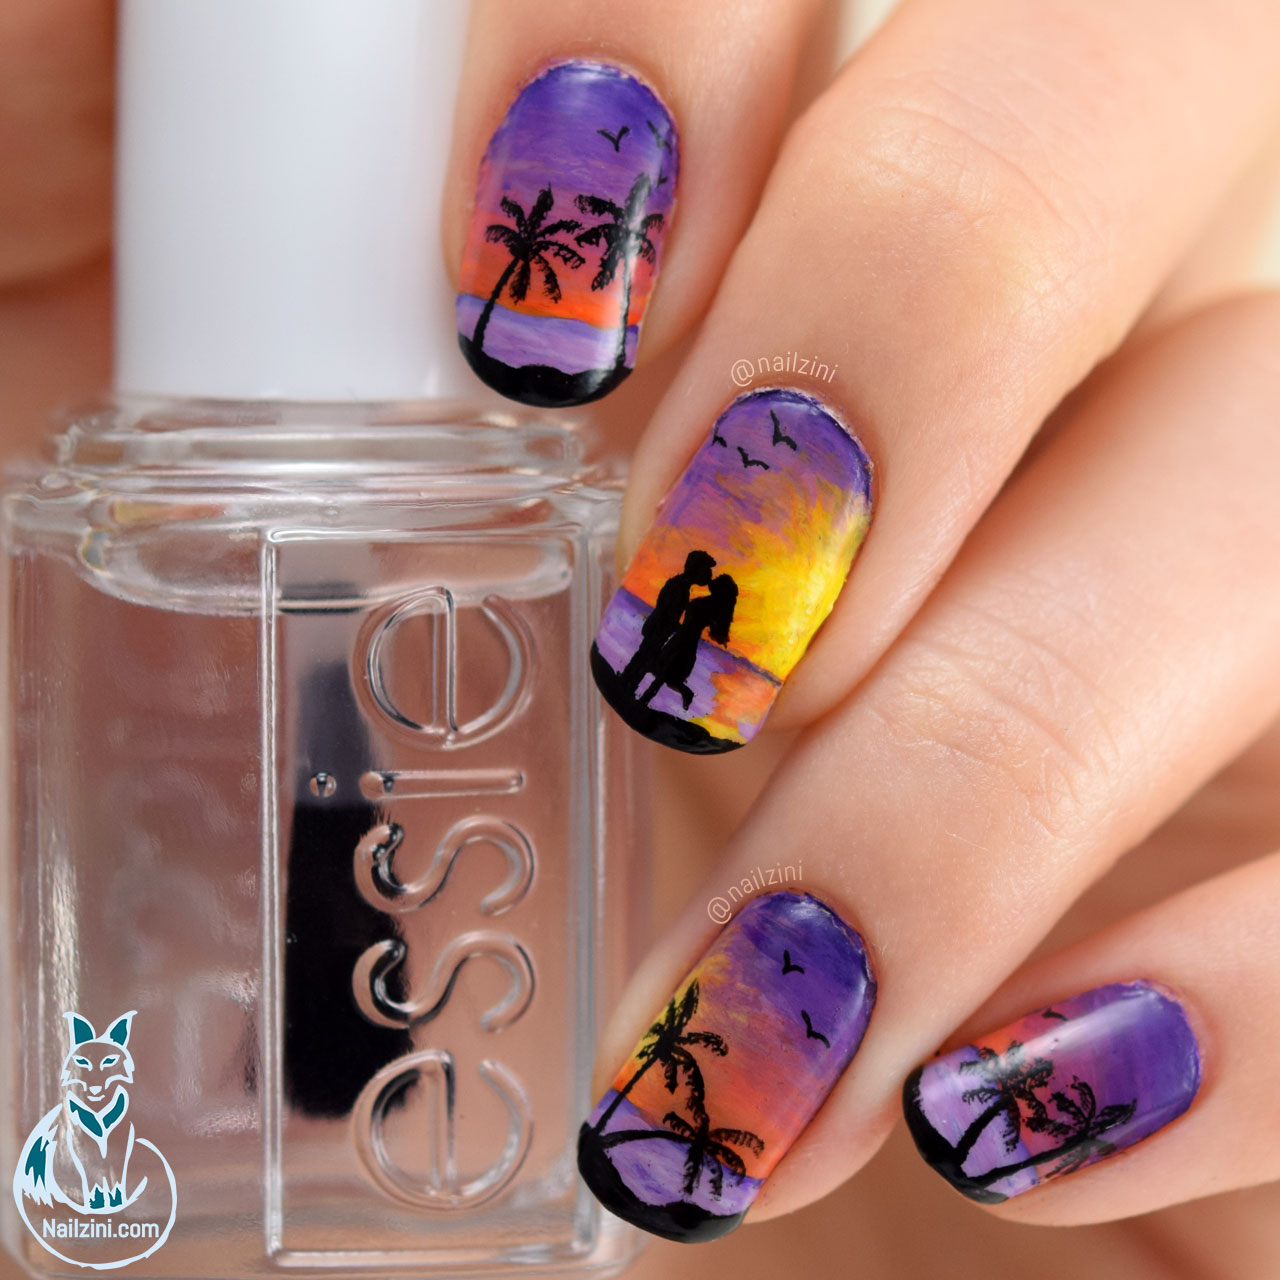 Lovers Beach Sunset Valentine Nail Art Nailzini